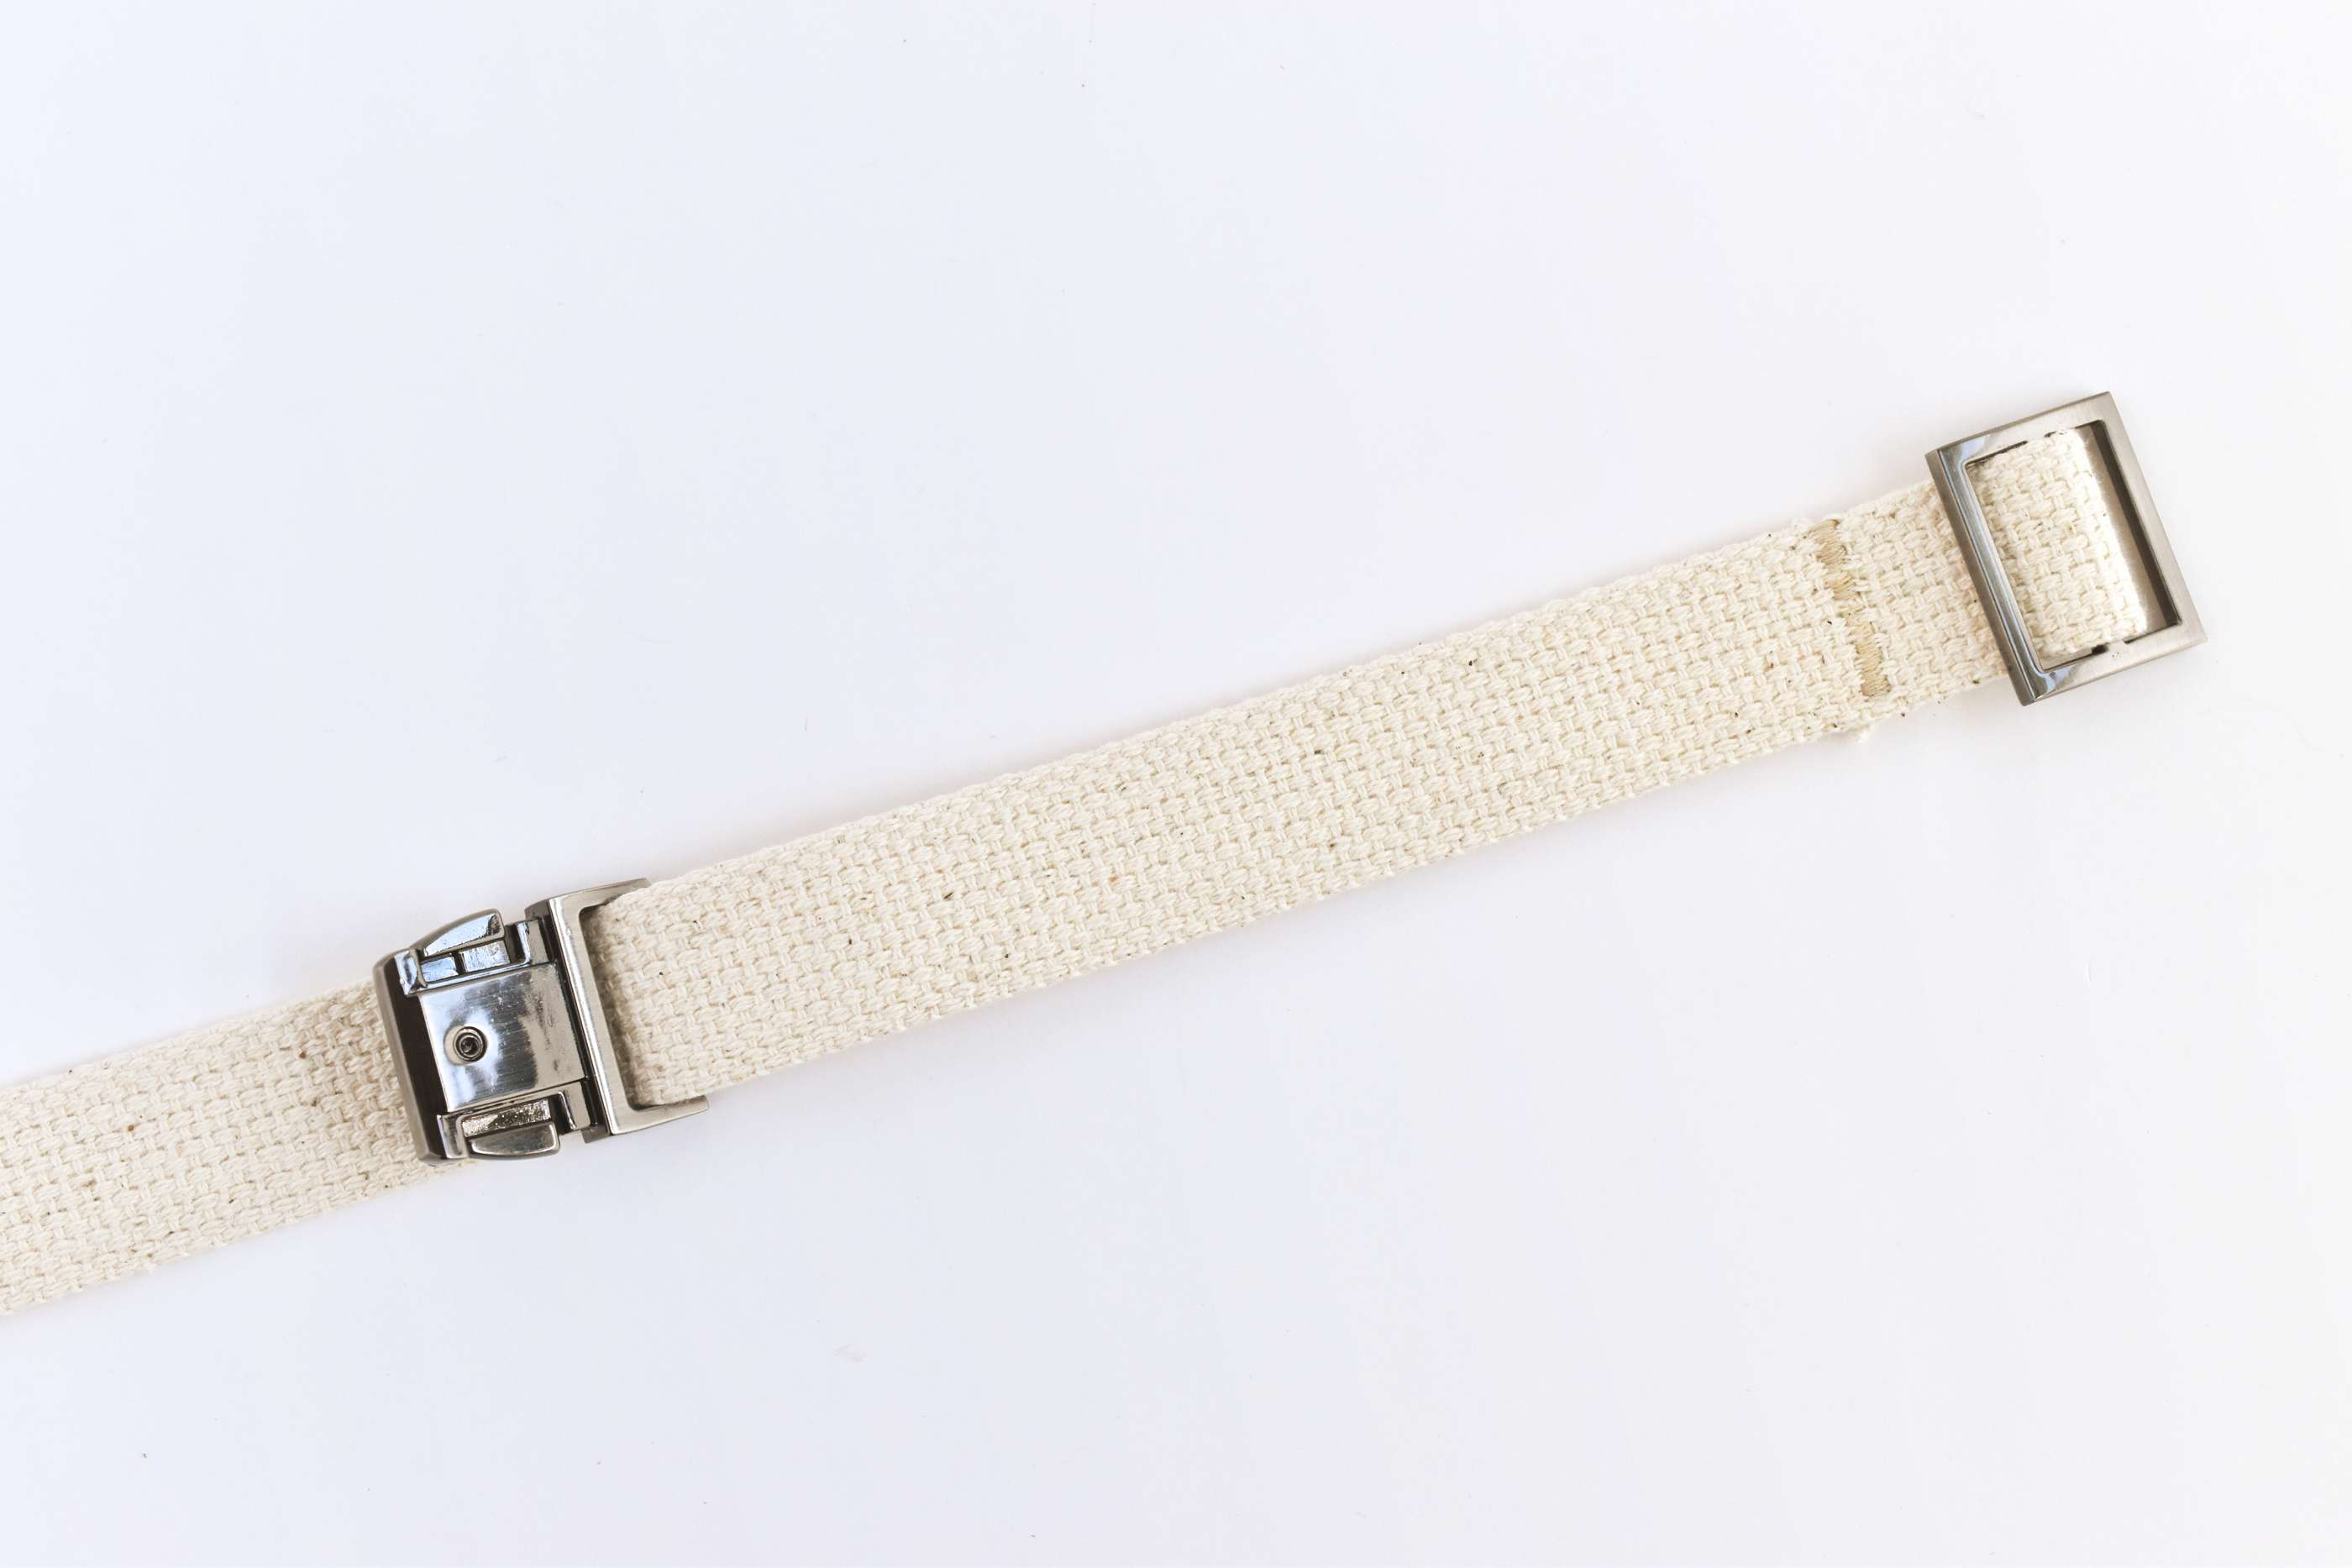 Sew on the Adjuster Buckle and Slide on a Main Buckle Piece